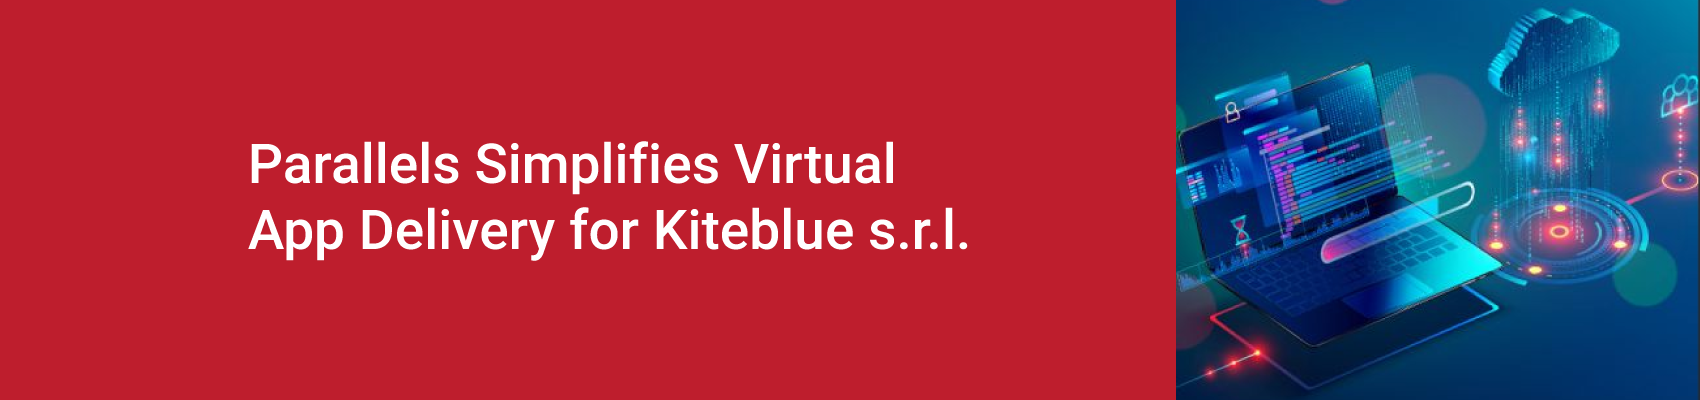 Parallels Simplifies Virtual App Delivery for Kiteblue s.r.l.